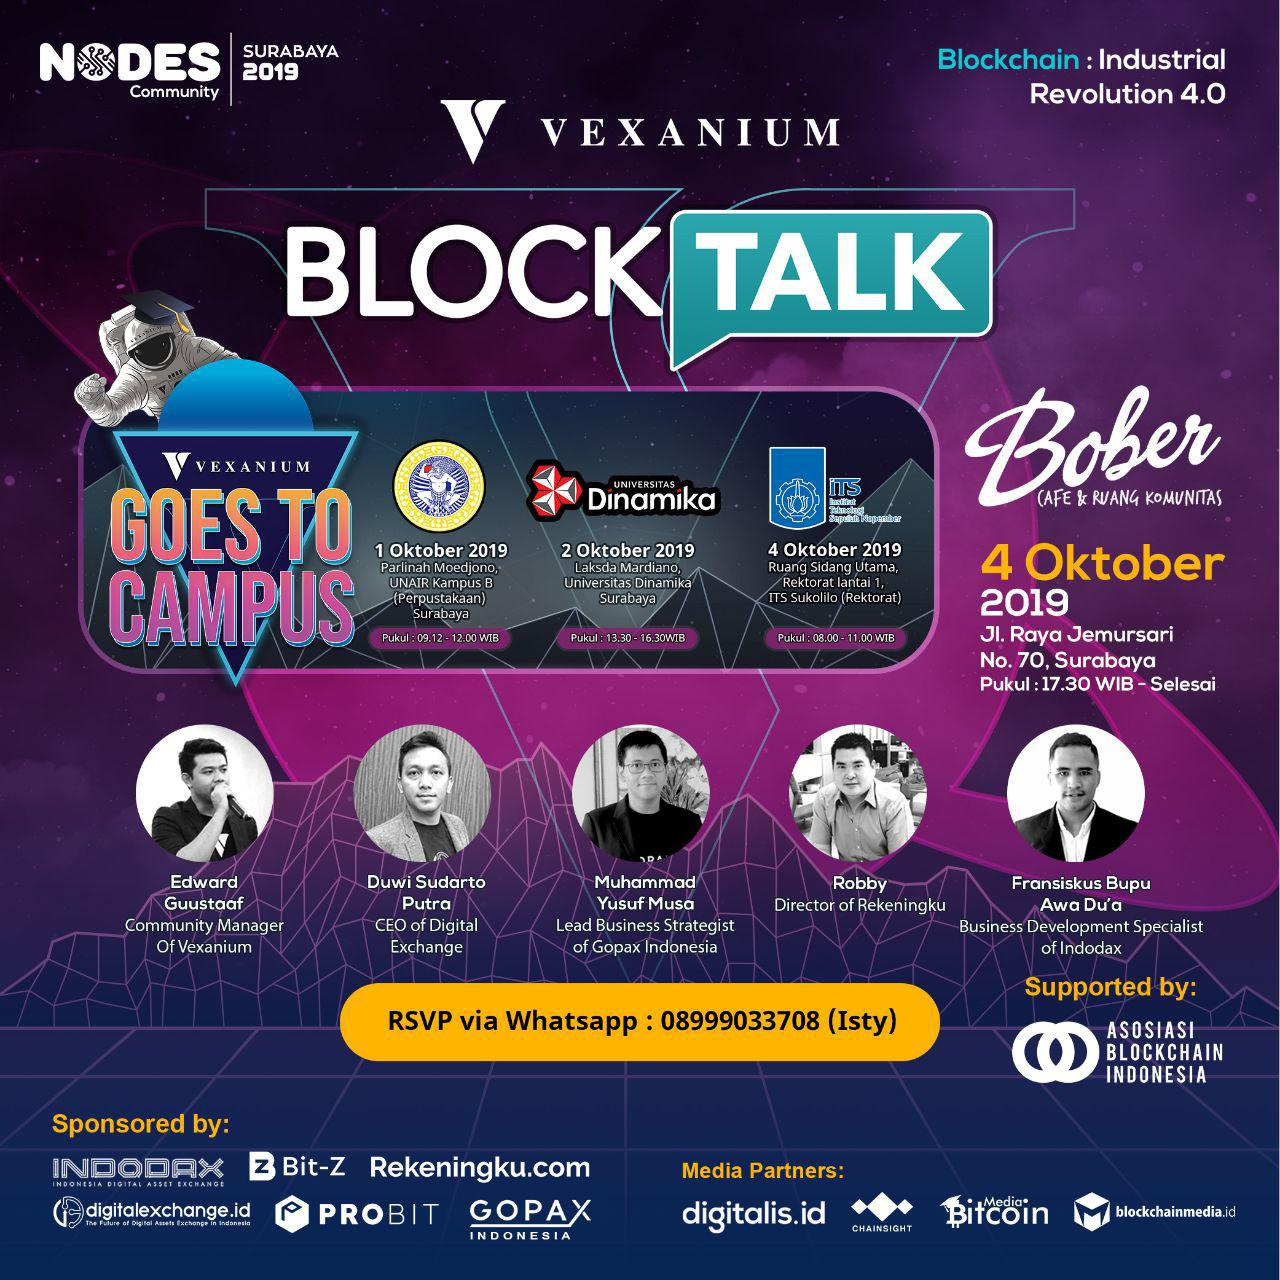 Vexanium Surabaya Roadshow 2019 Highlight